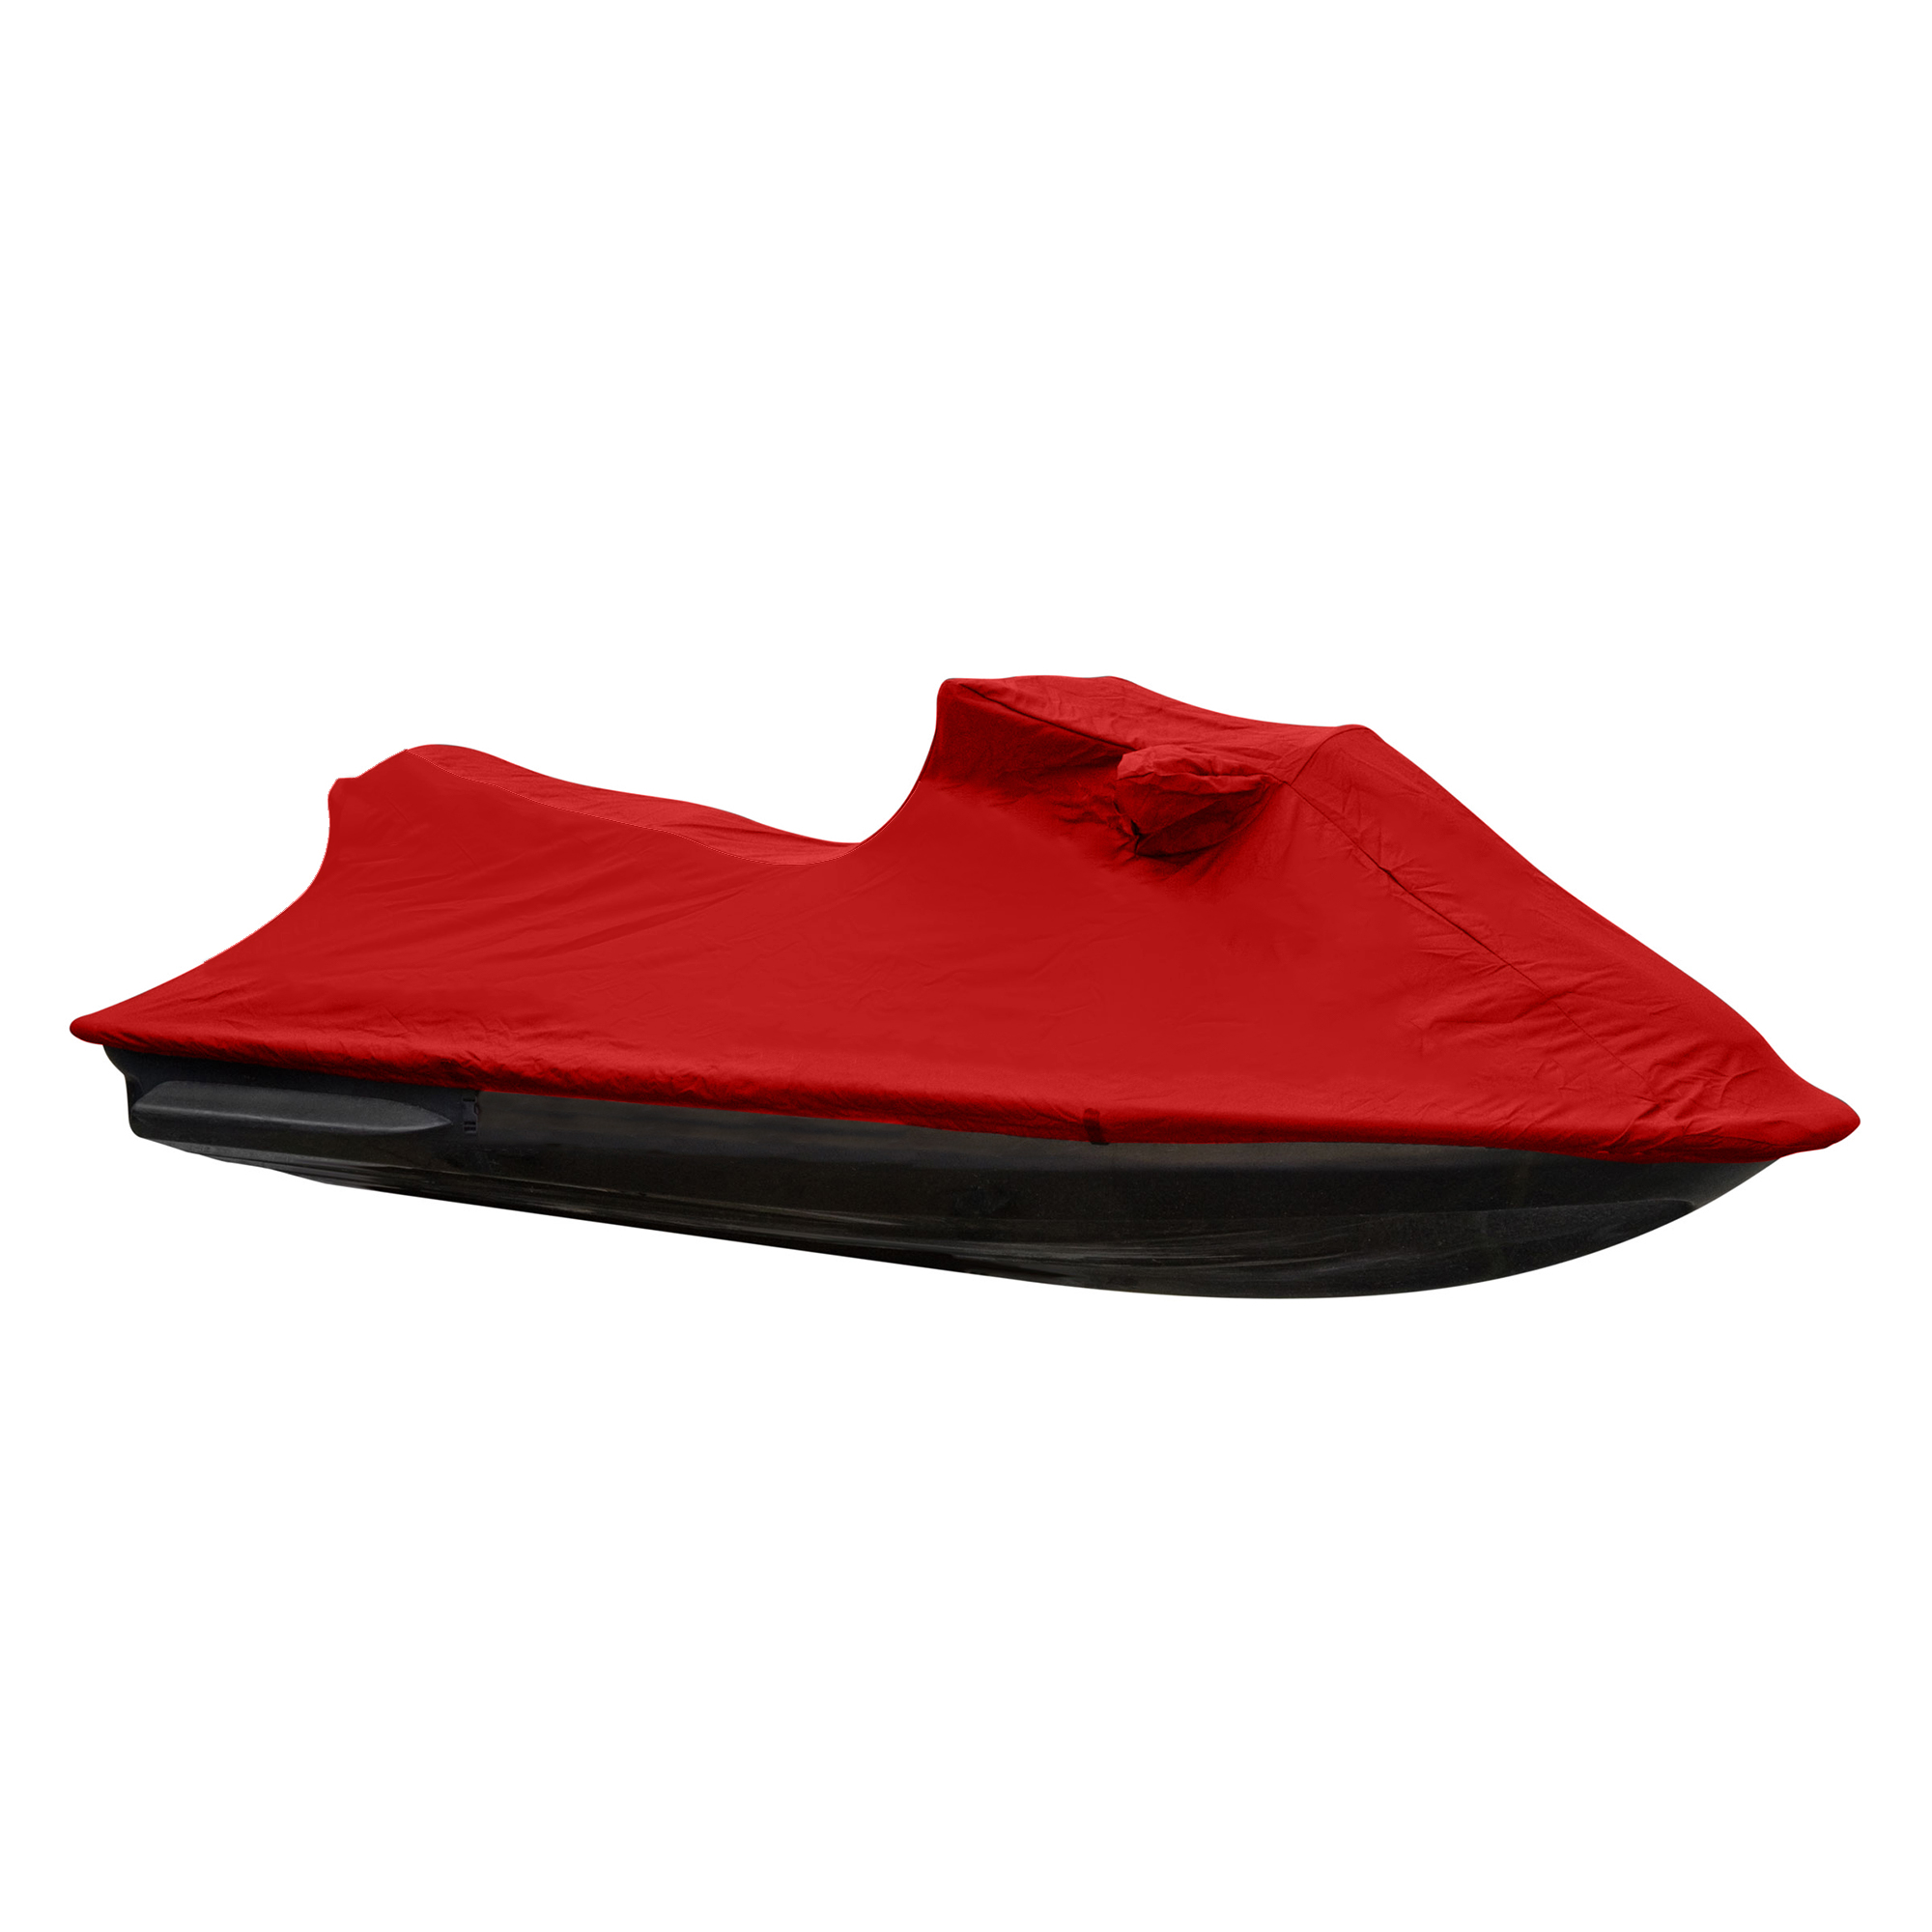 Westland Exact Fit PWC Cover for Polaris